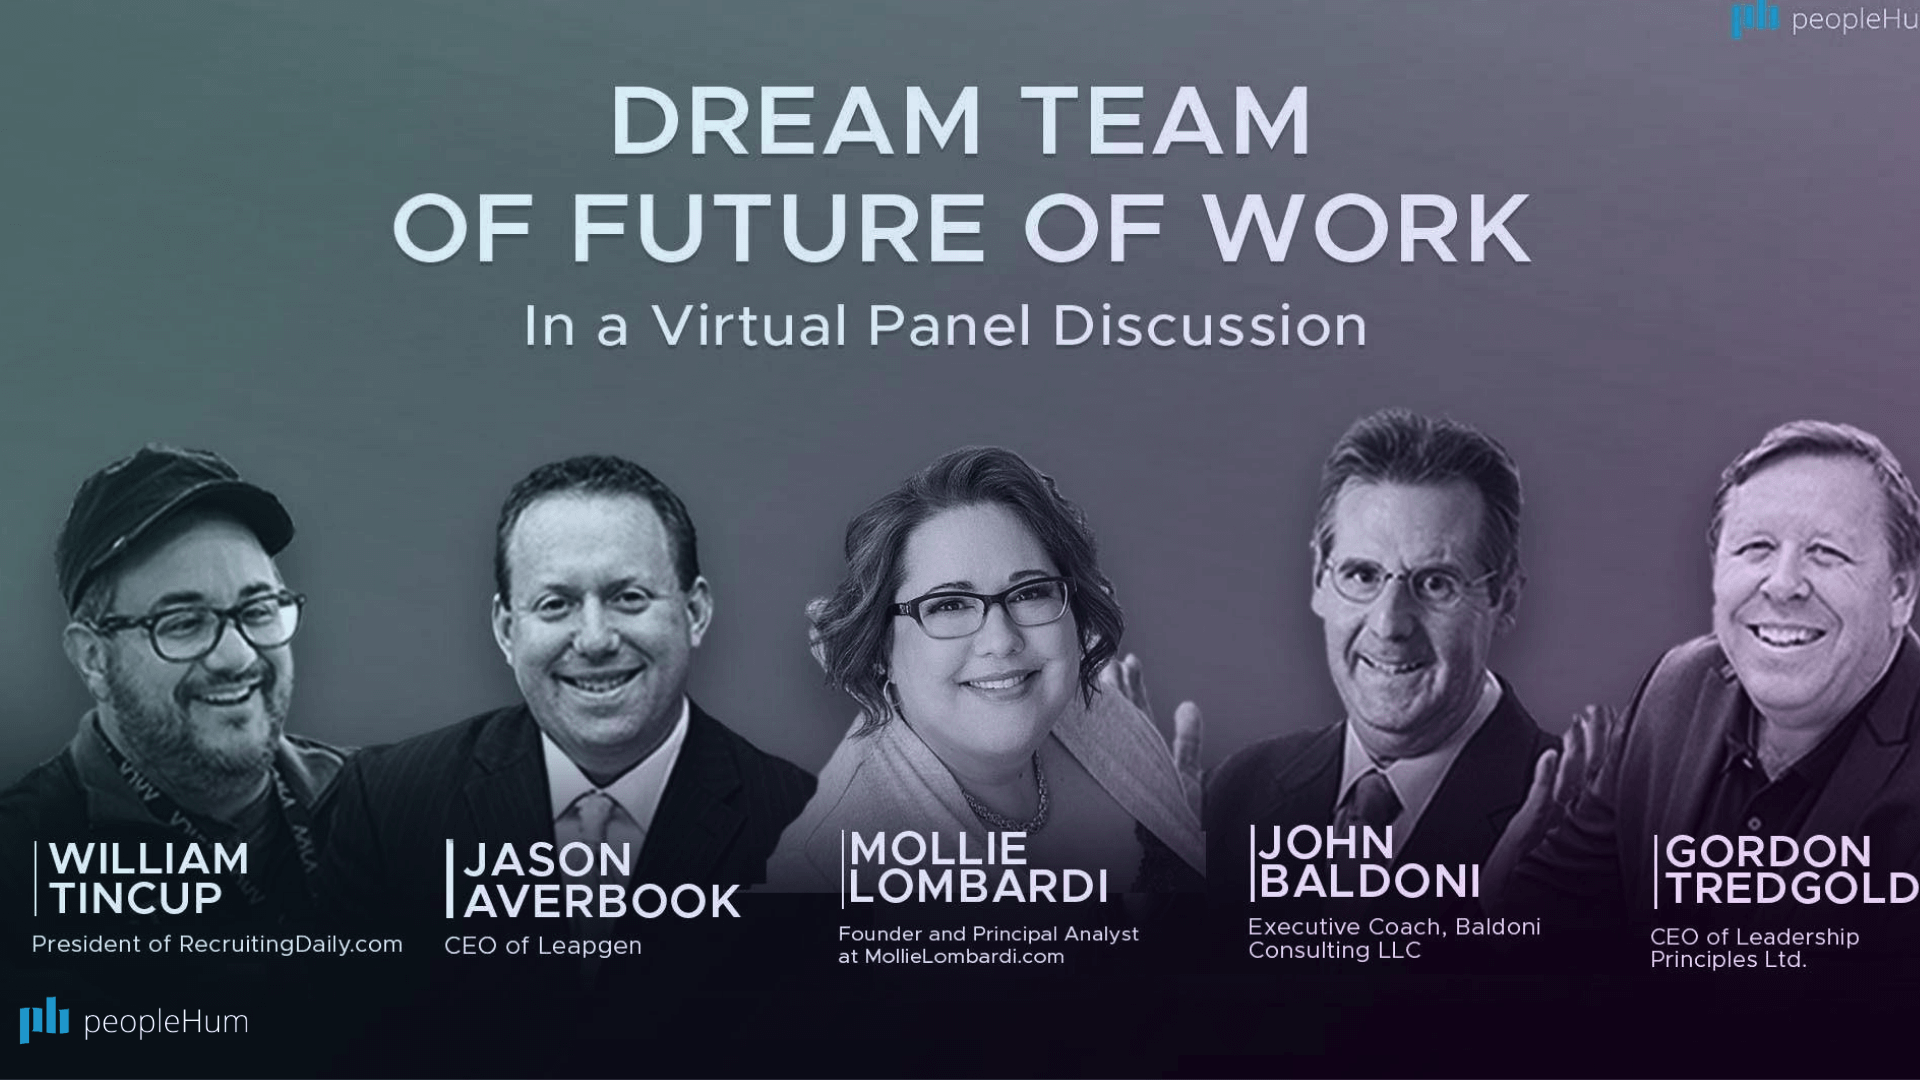 Dream team of future of work - In a virtual panel discussion